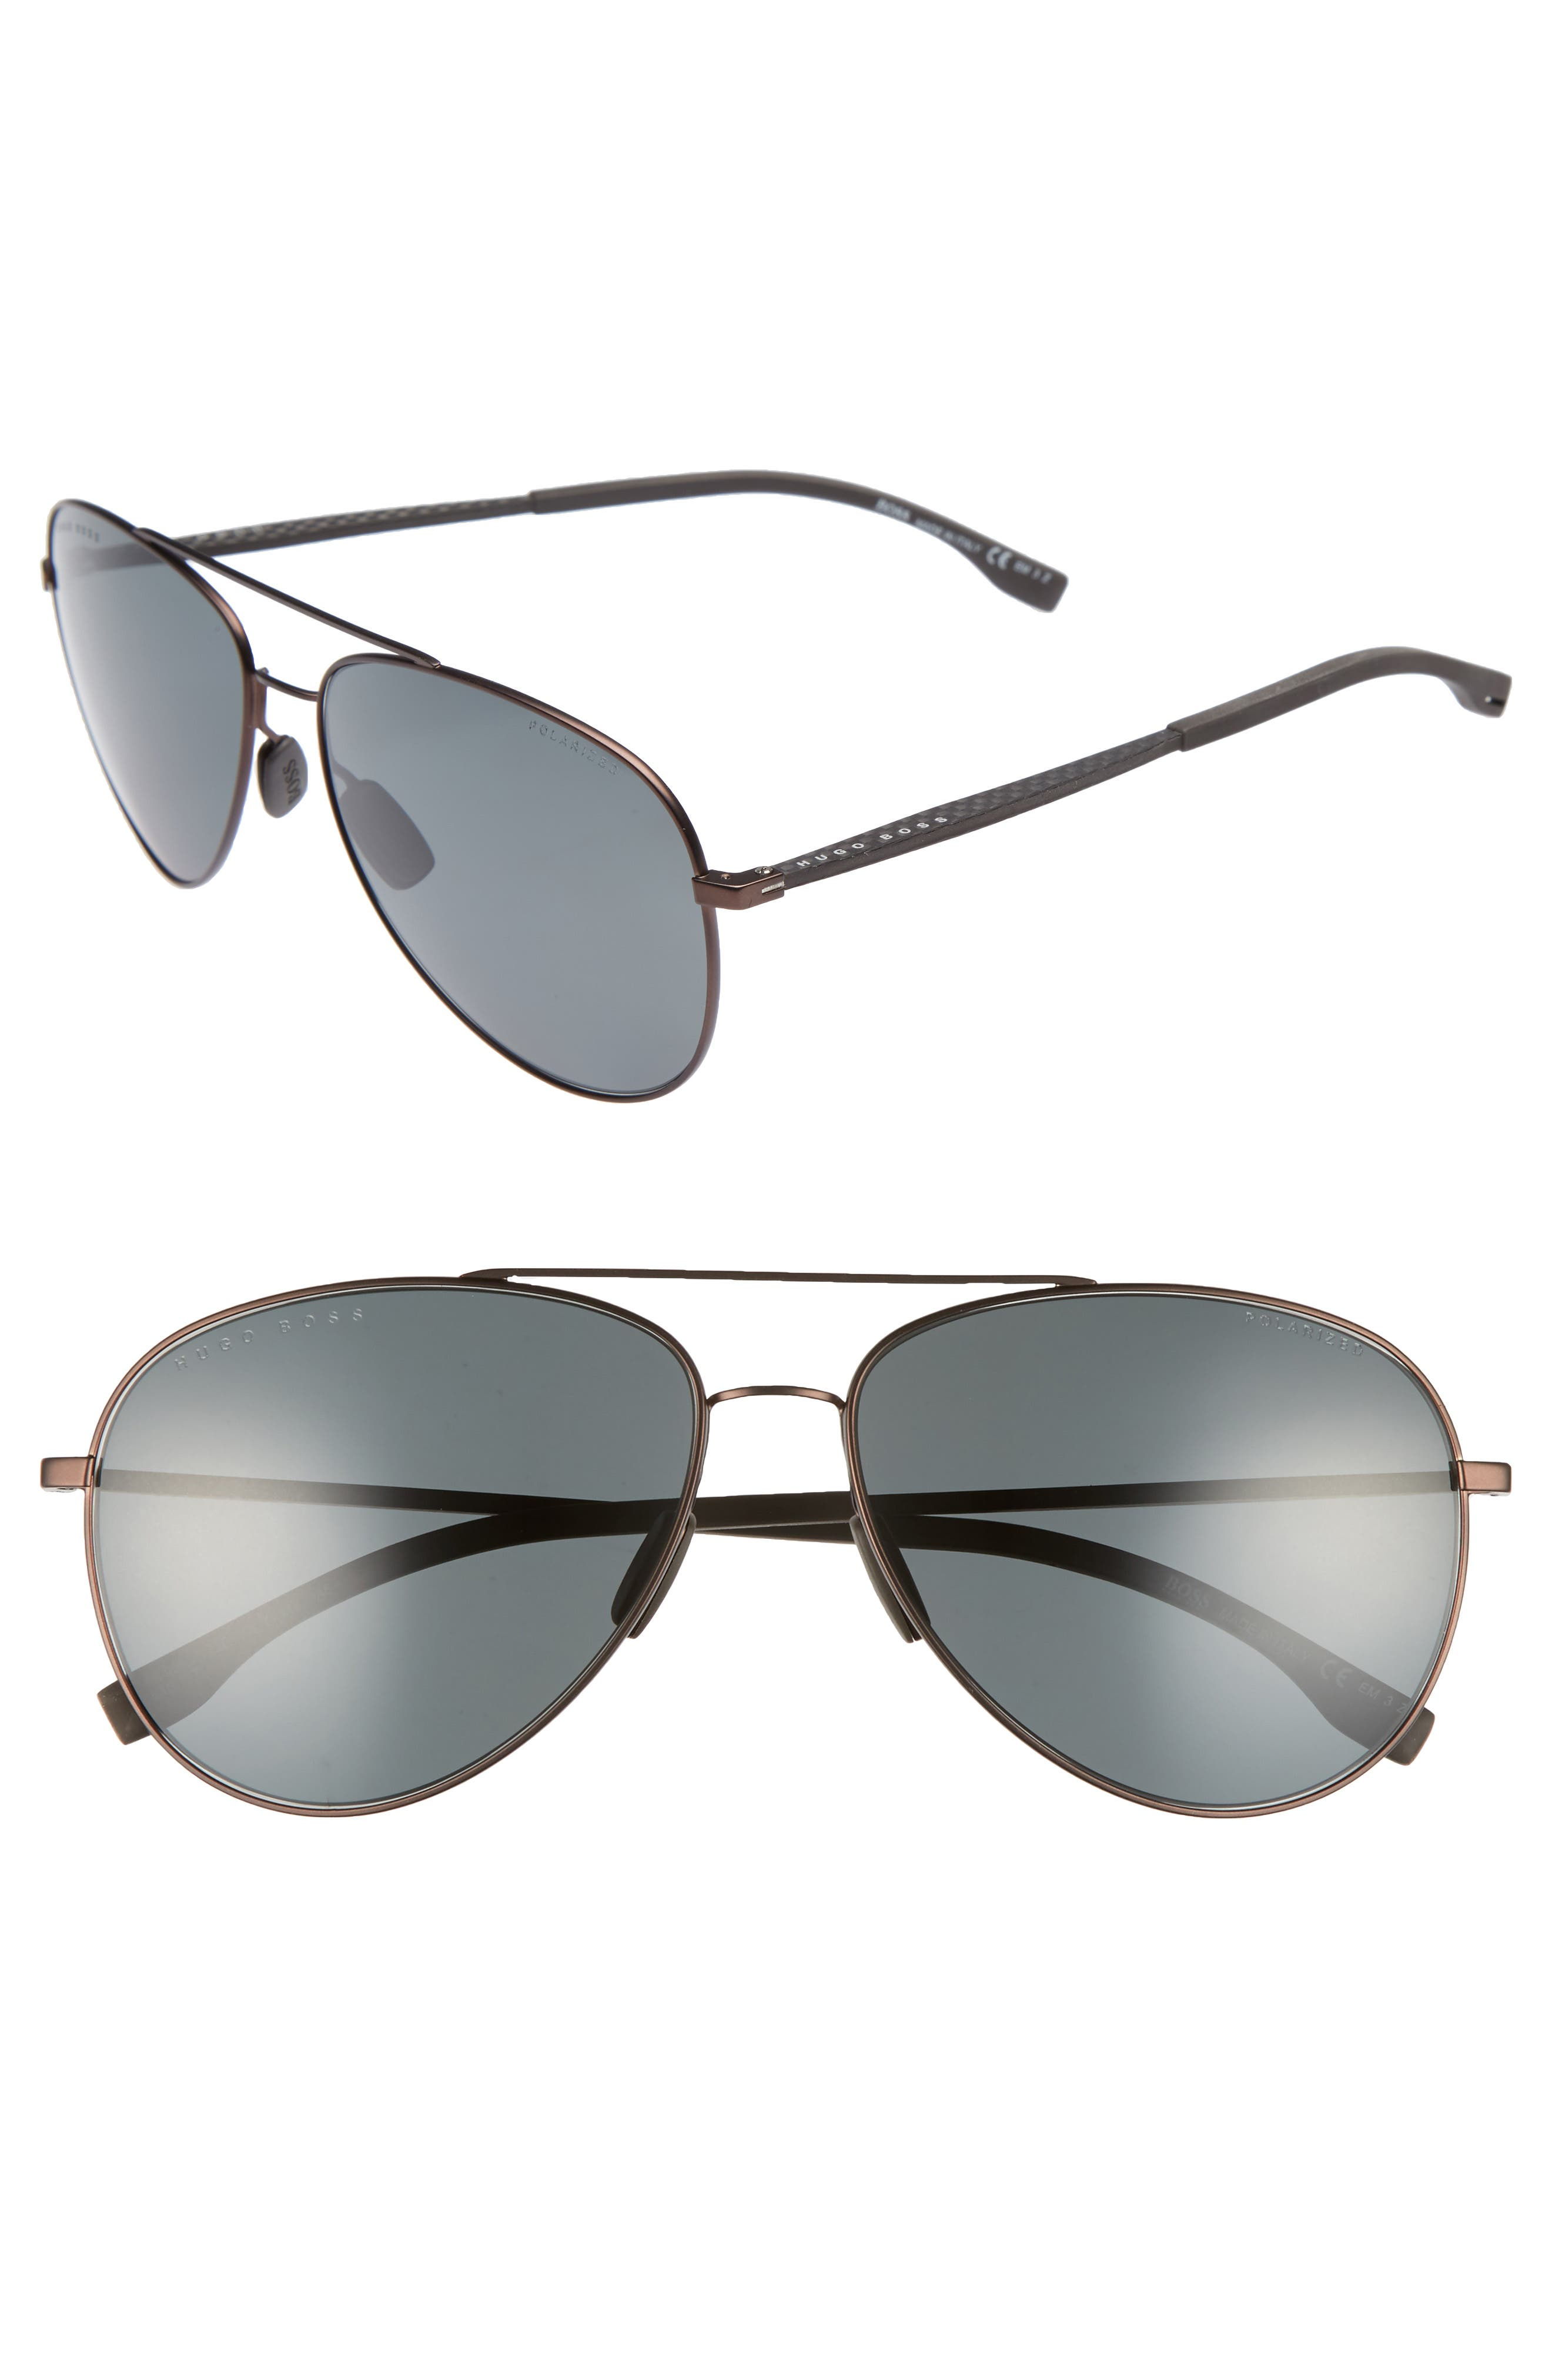 59mm Aviator Sunglasses,                         Main,                         color, Brown Rubber/ Brown